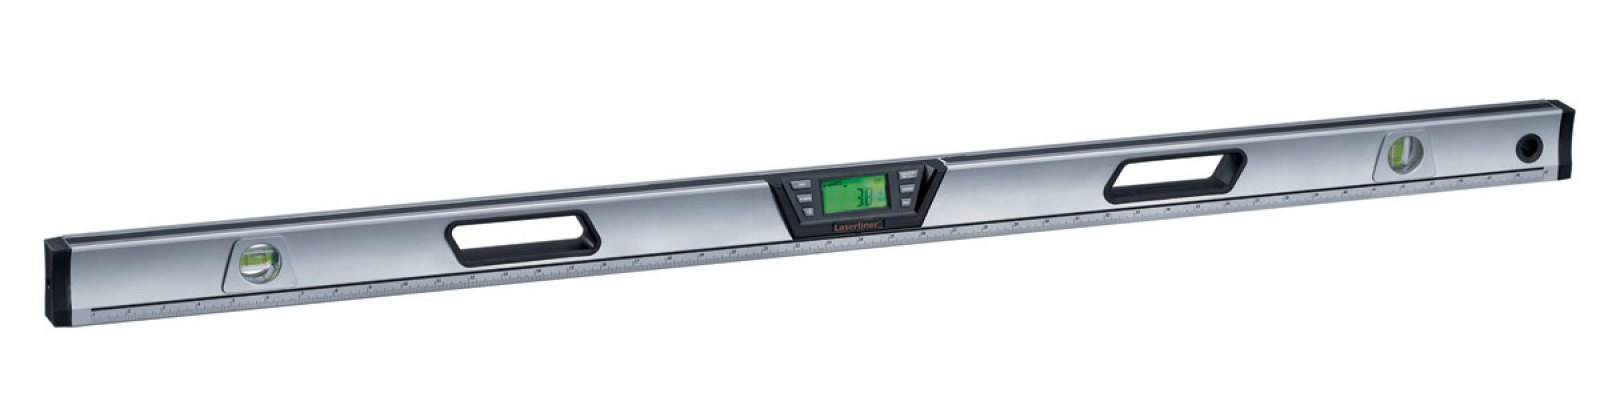 Vesivaaka Laserliner Digi-Level Pro 120 digitaalinen